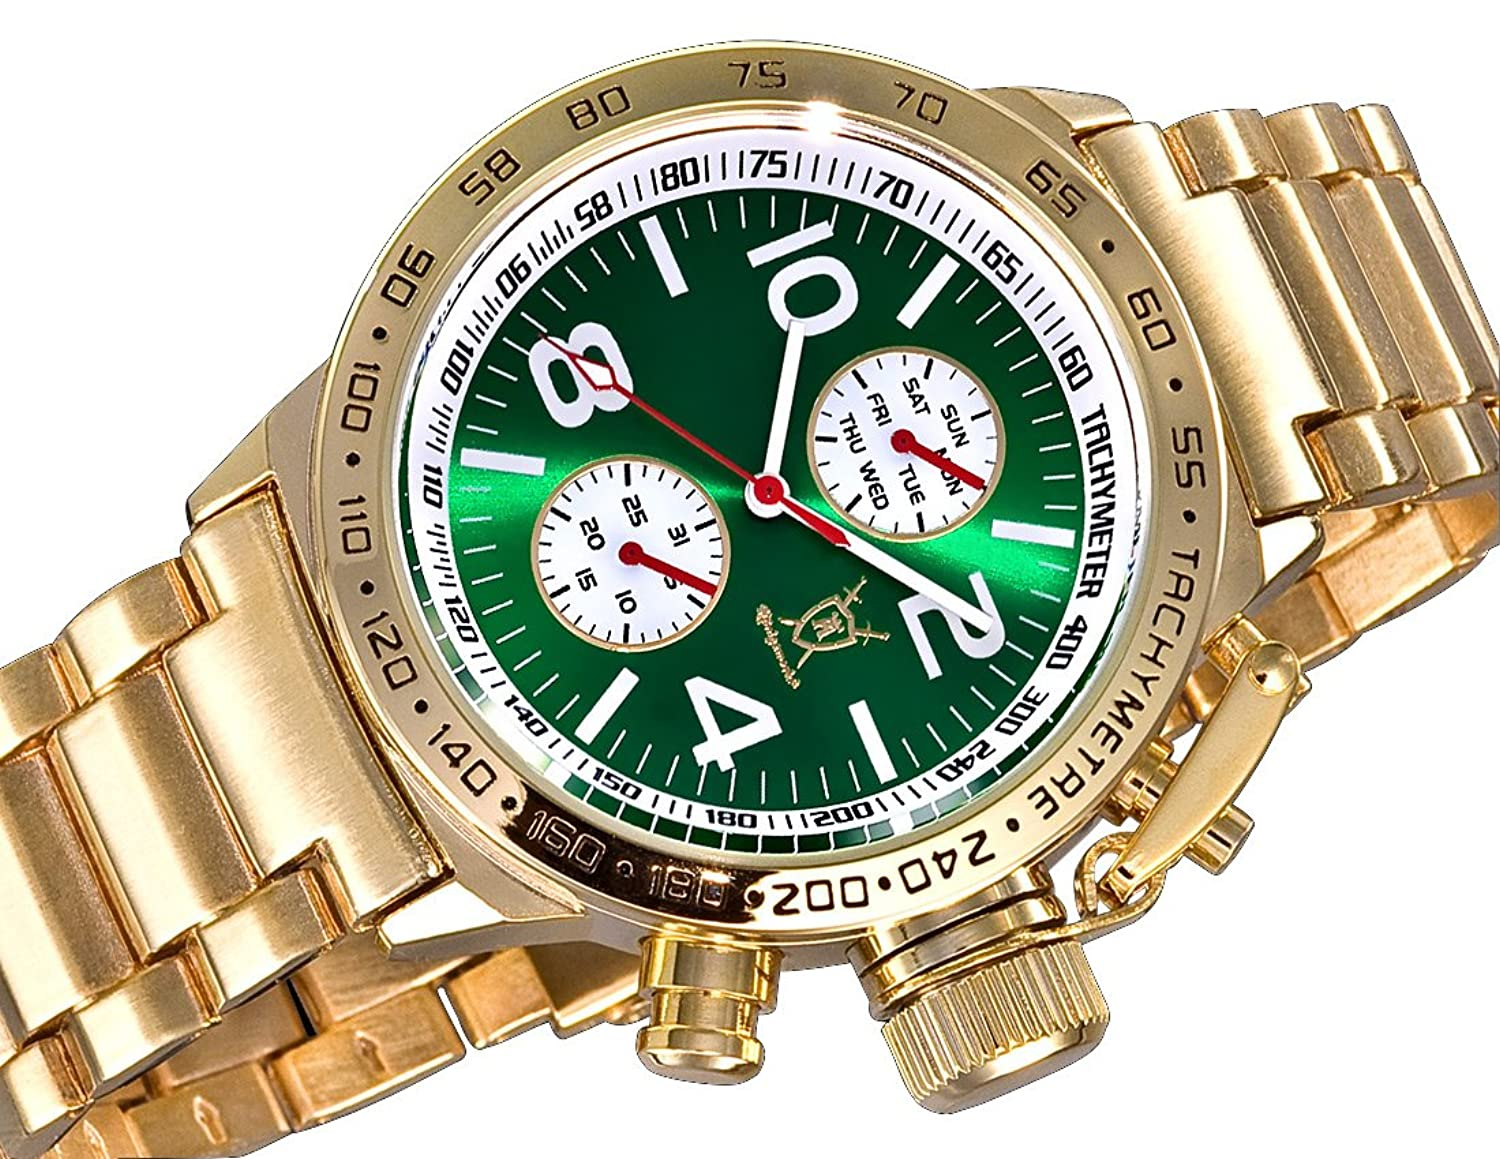 invicta dial diver watches products green quartz mens watch s men pro chronograph face